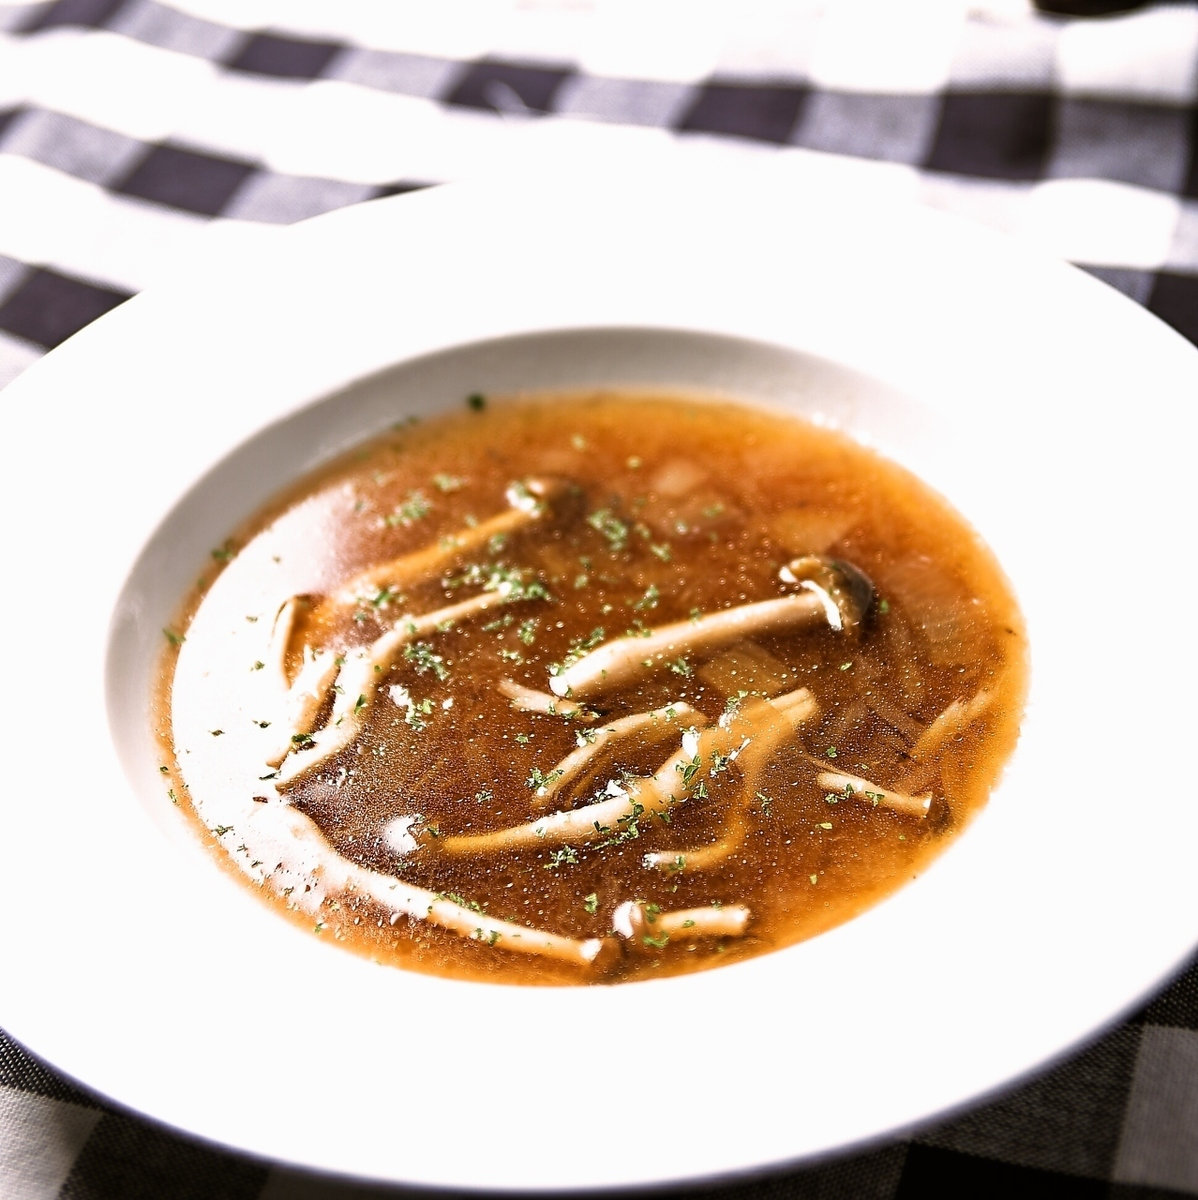 Vegetables and mashrooms soup with vegetable and wooden child's consomme soup